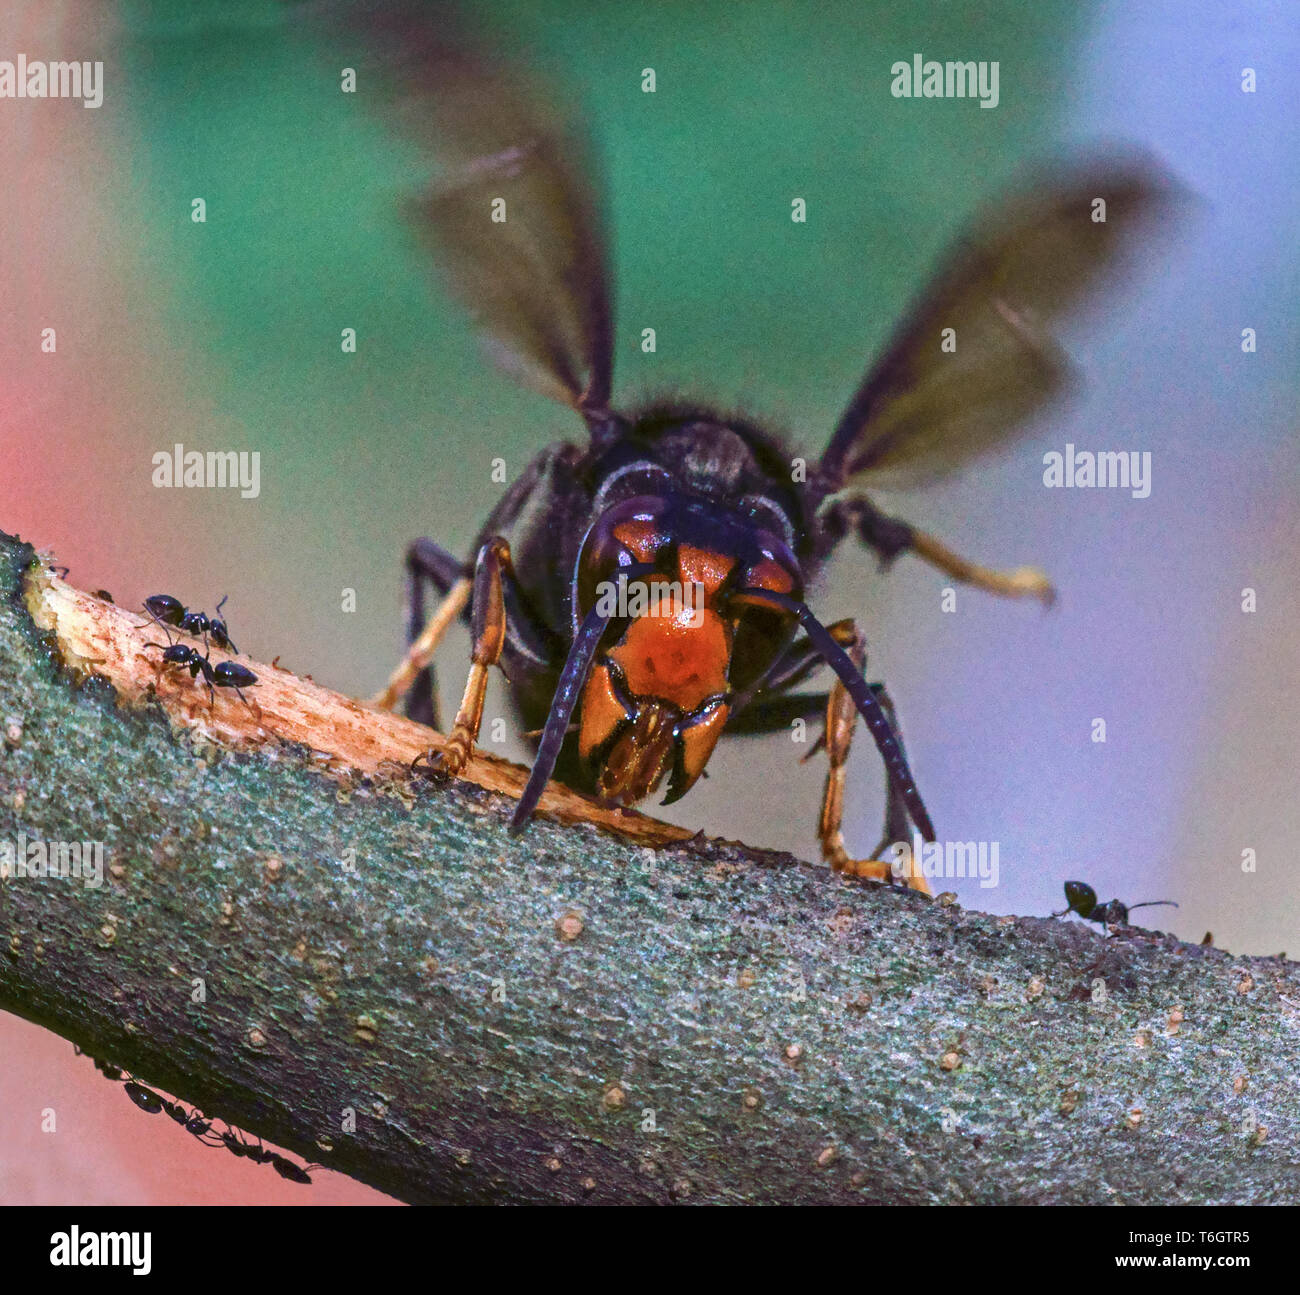 Asian Hornet (Vespa velutina) Now a pest species in France This photograph was taken in my garden in Hautes-Pyrenees. - Stock Image